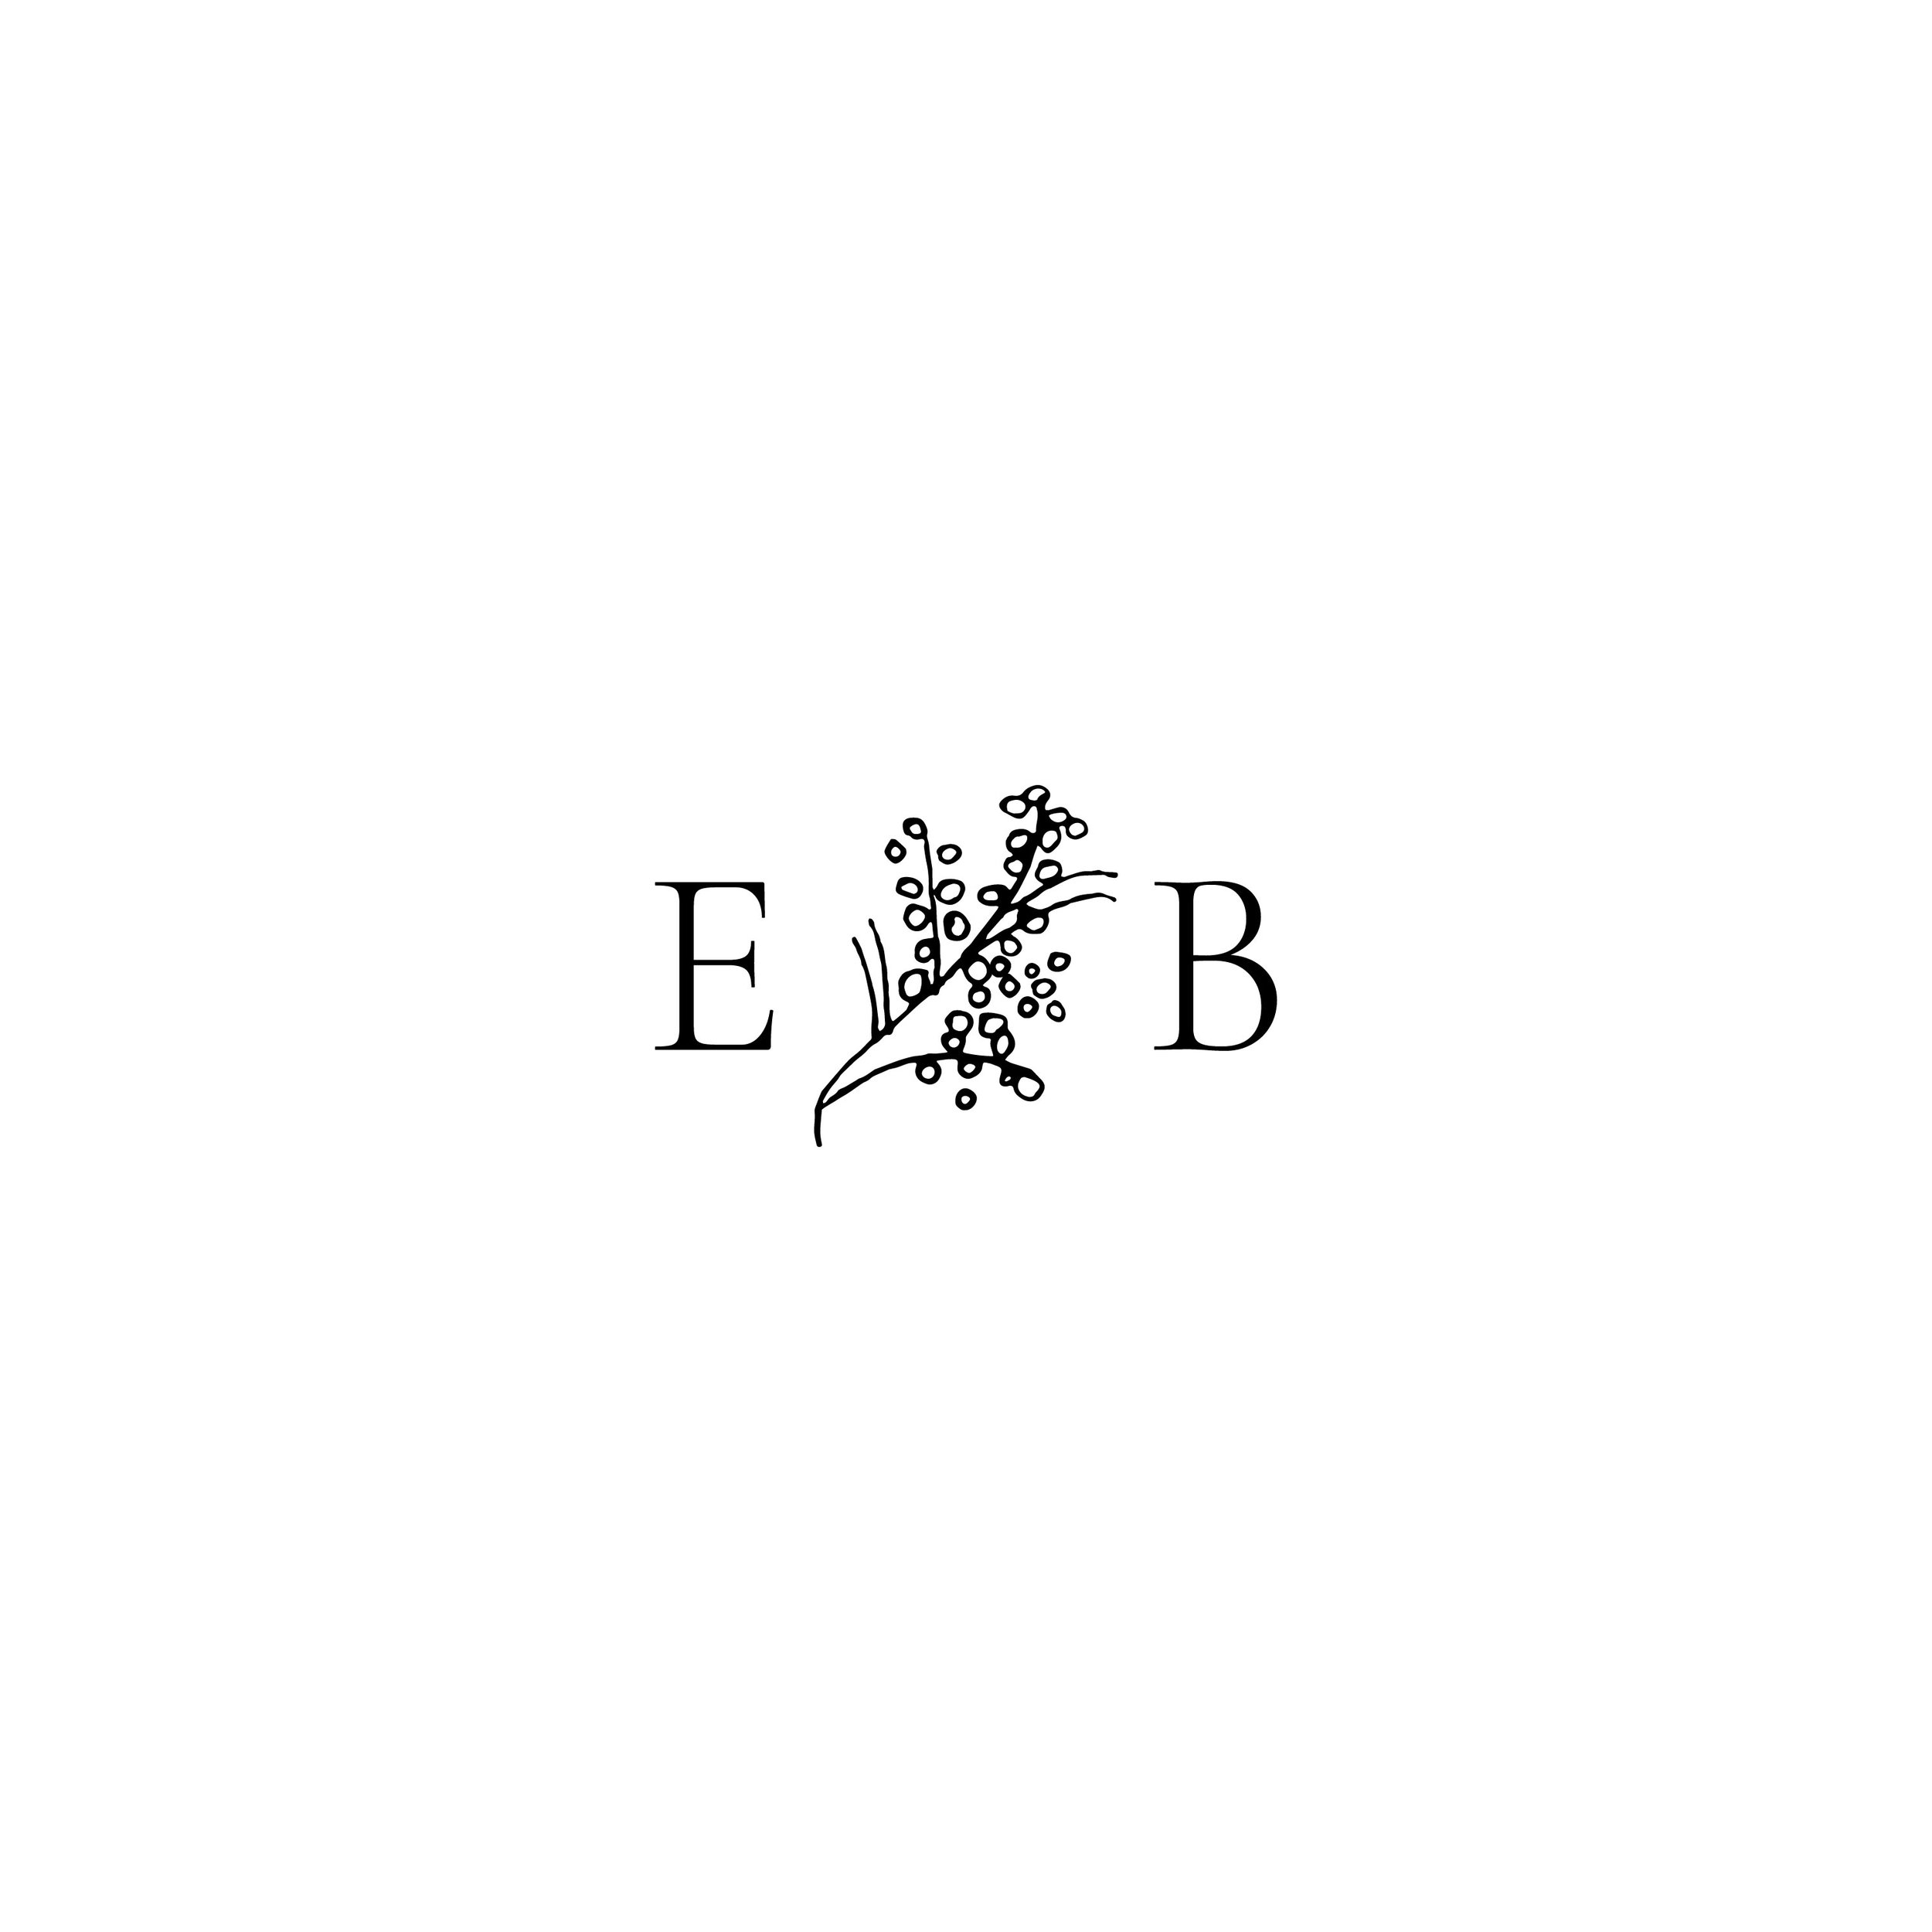 elle and bee_secondary logo final.jpg